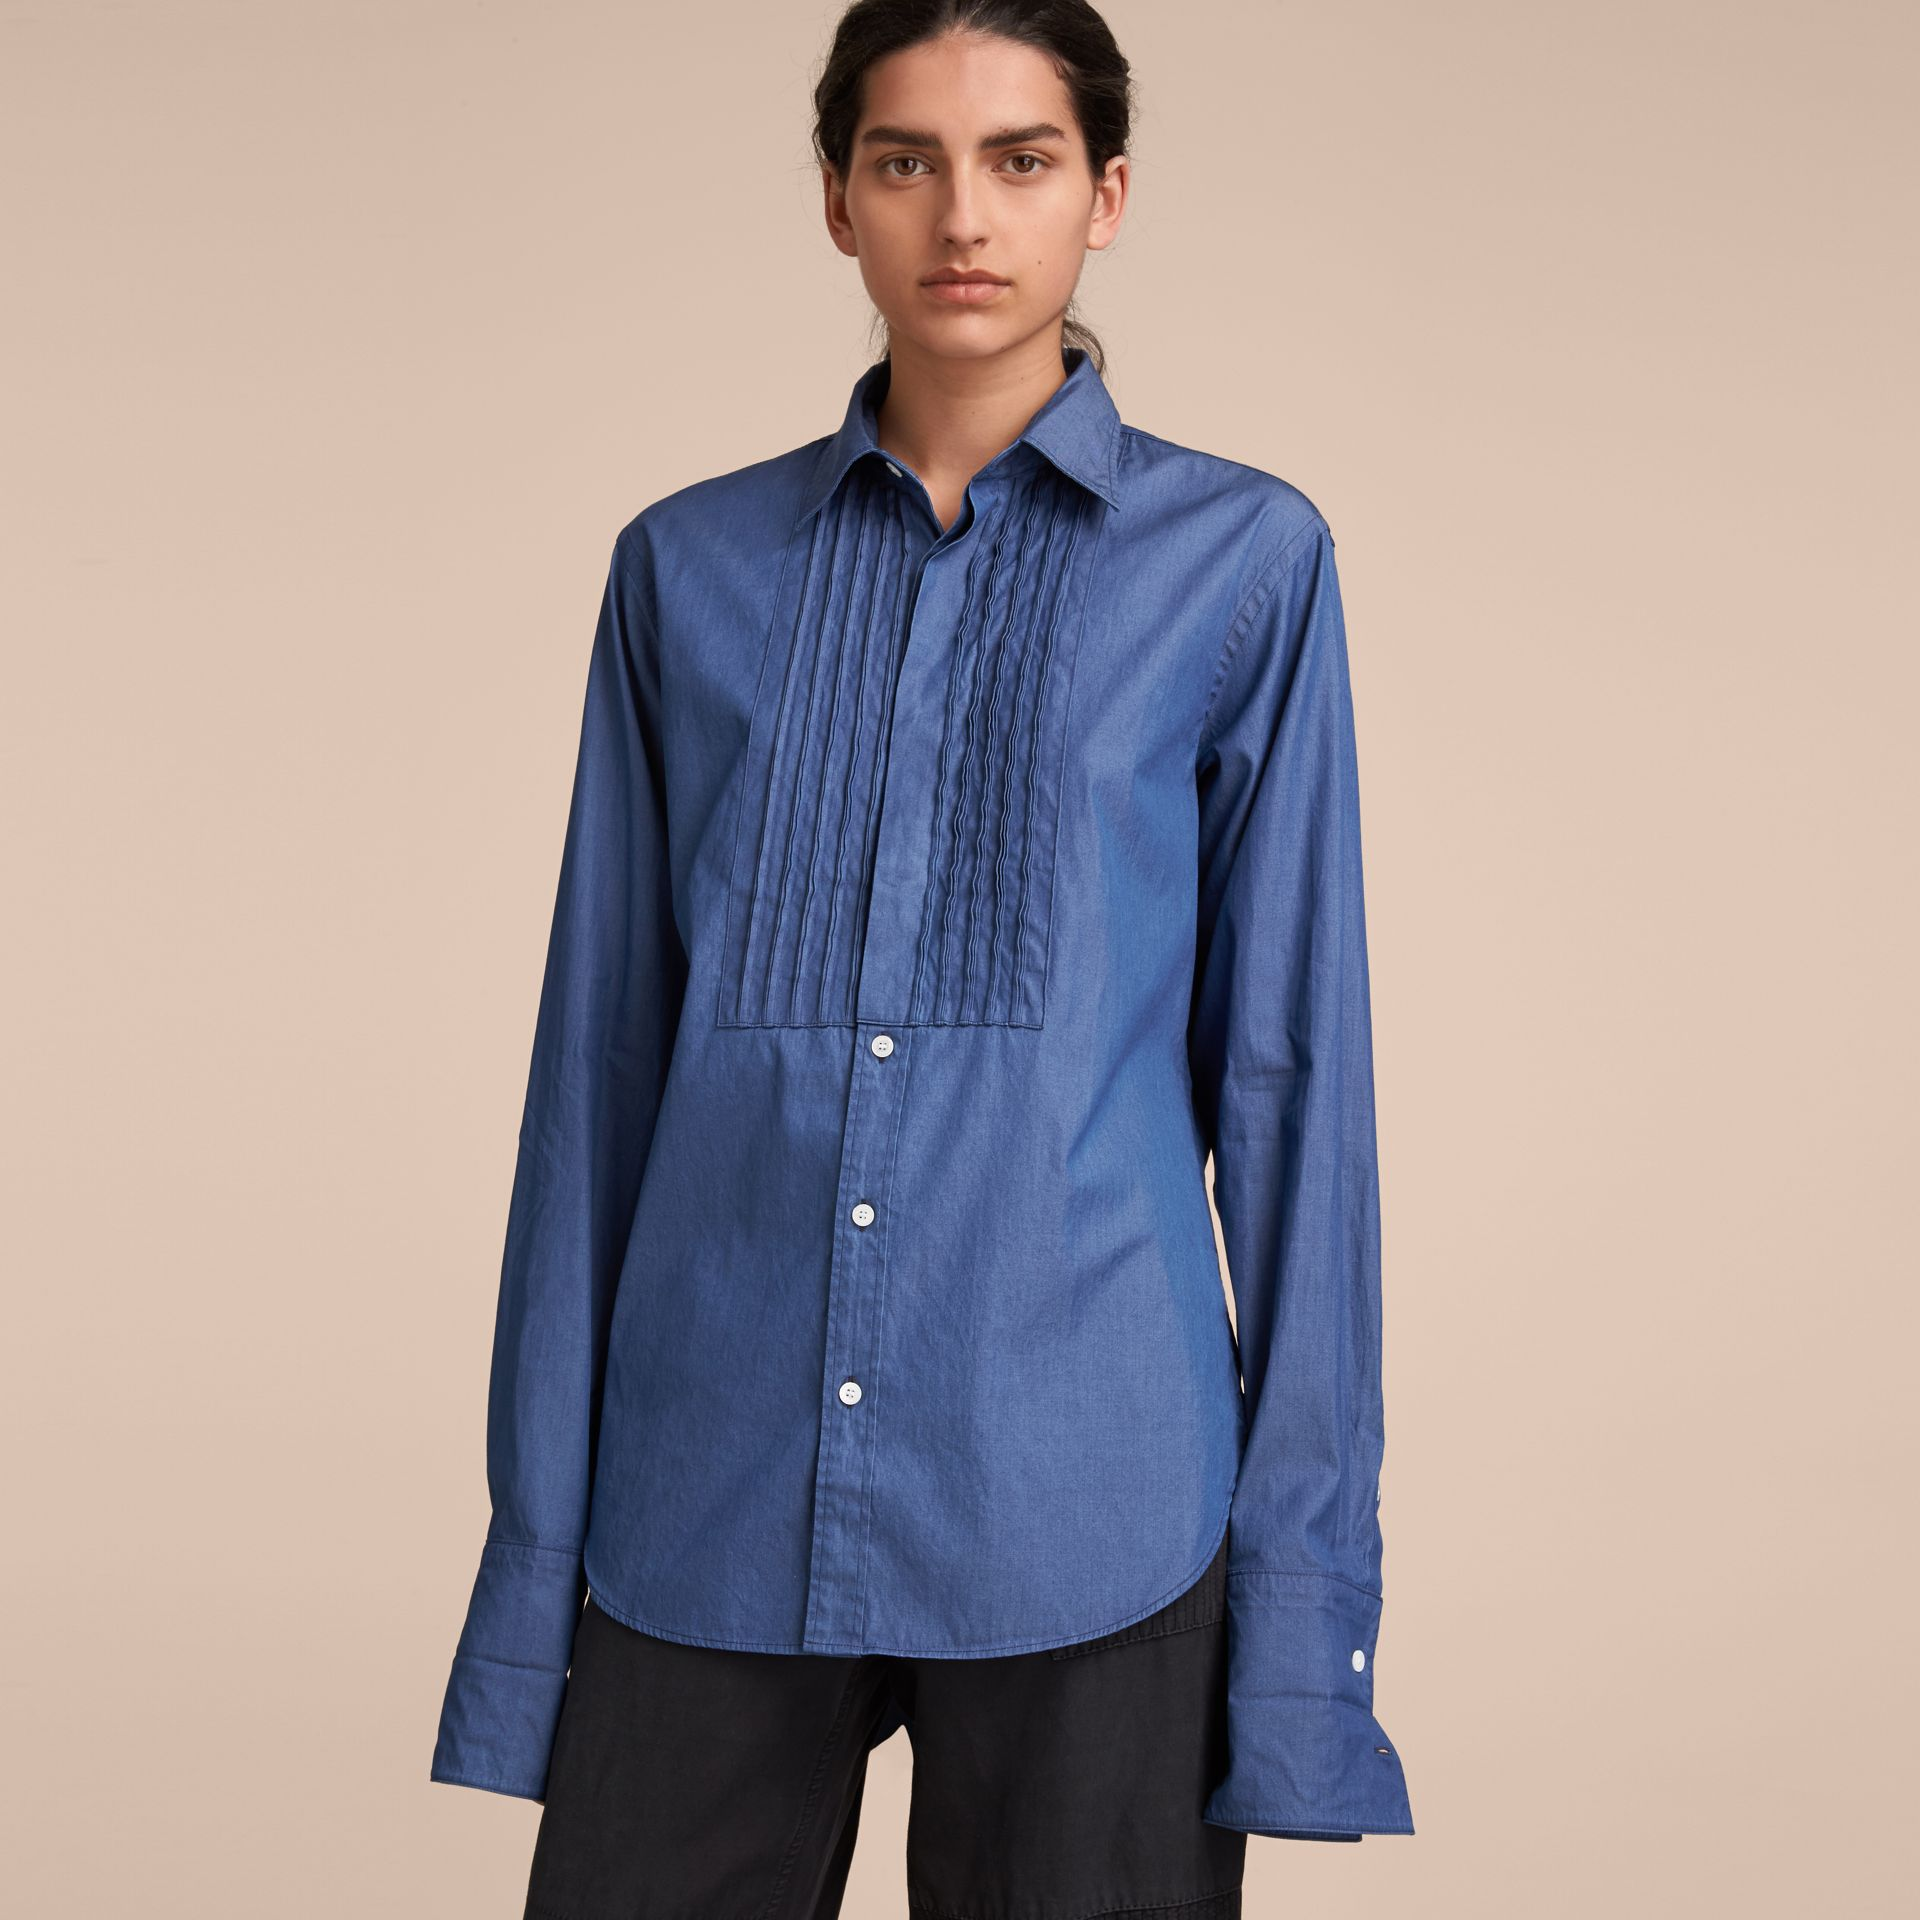 Unisex Double-cuff Pintuck Bib Cotton Shirt in Denim Blue - Women | Burberry - gallery image 6